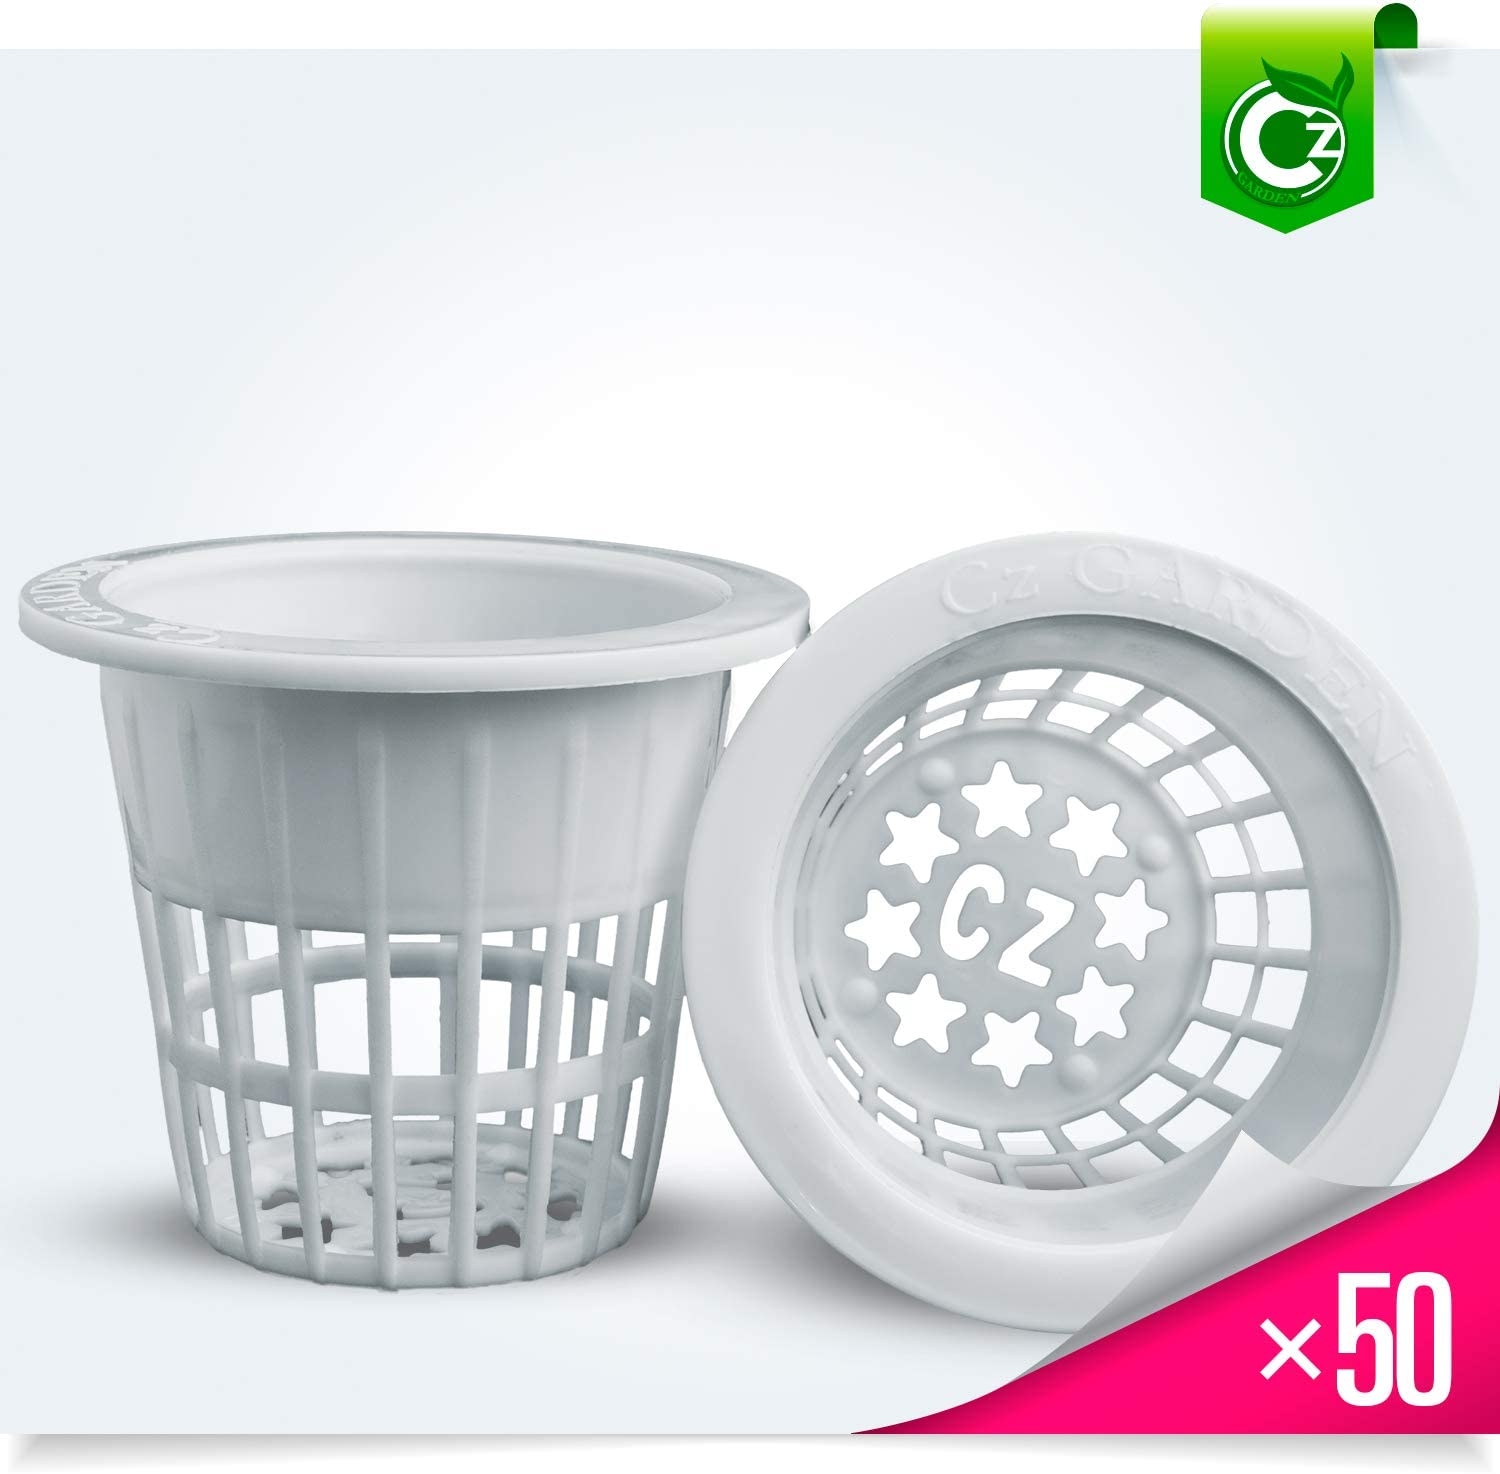 2 inch Net Pots Cups Heavy Duty Round Wide Rim Design – Orchids Aquaponics Hydroponics Slotted Mesh Cz Garden All Star – 50 White